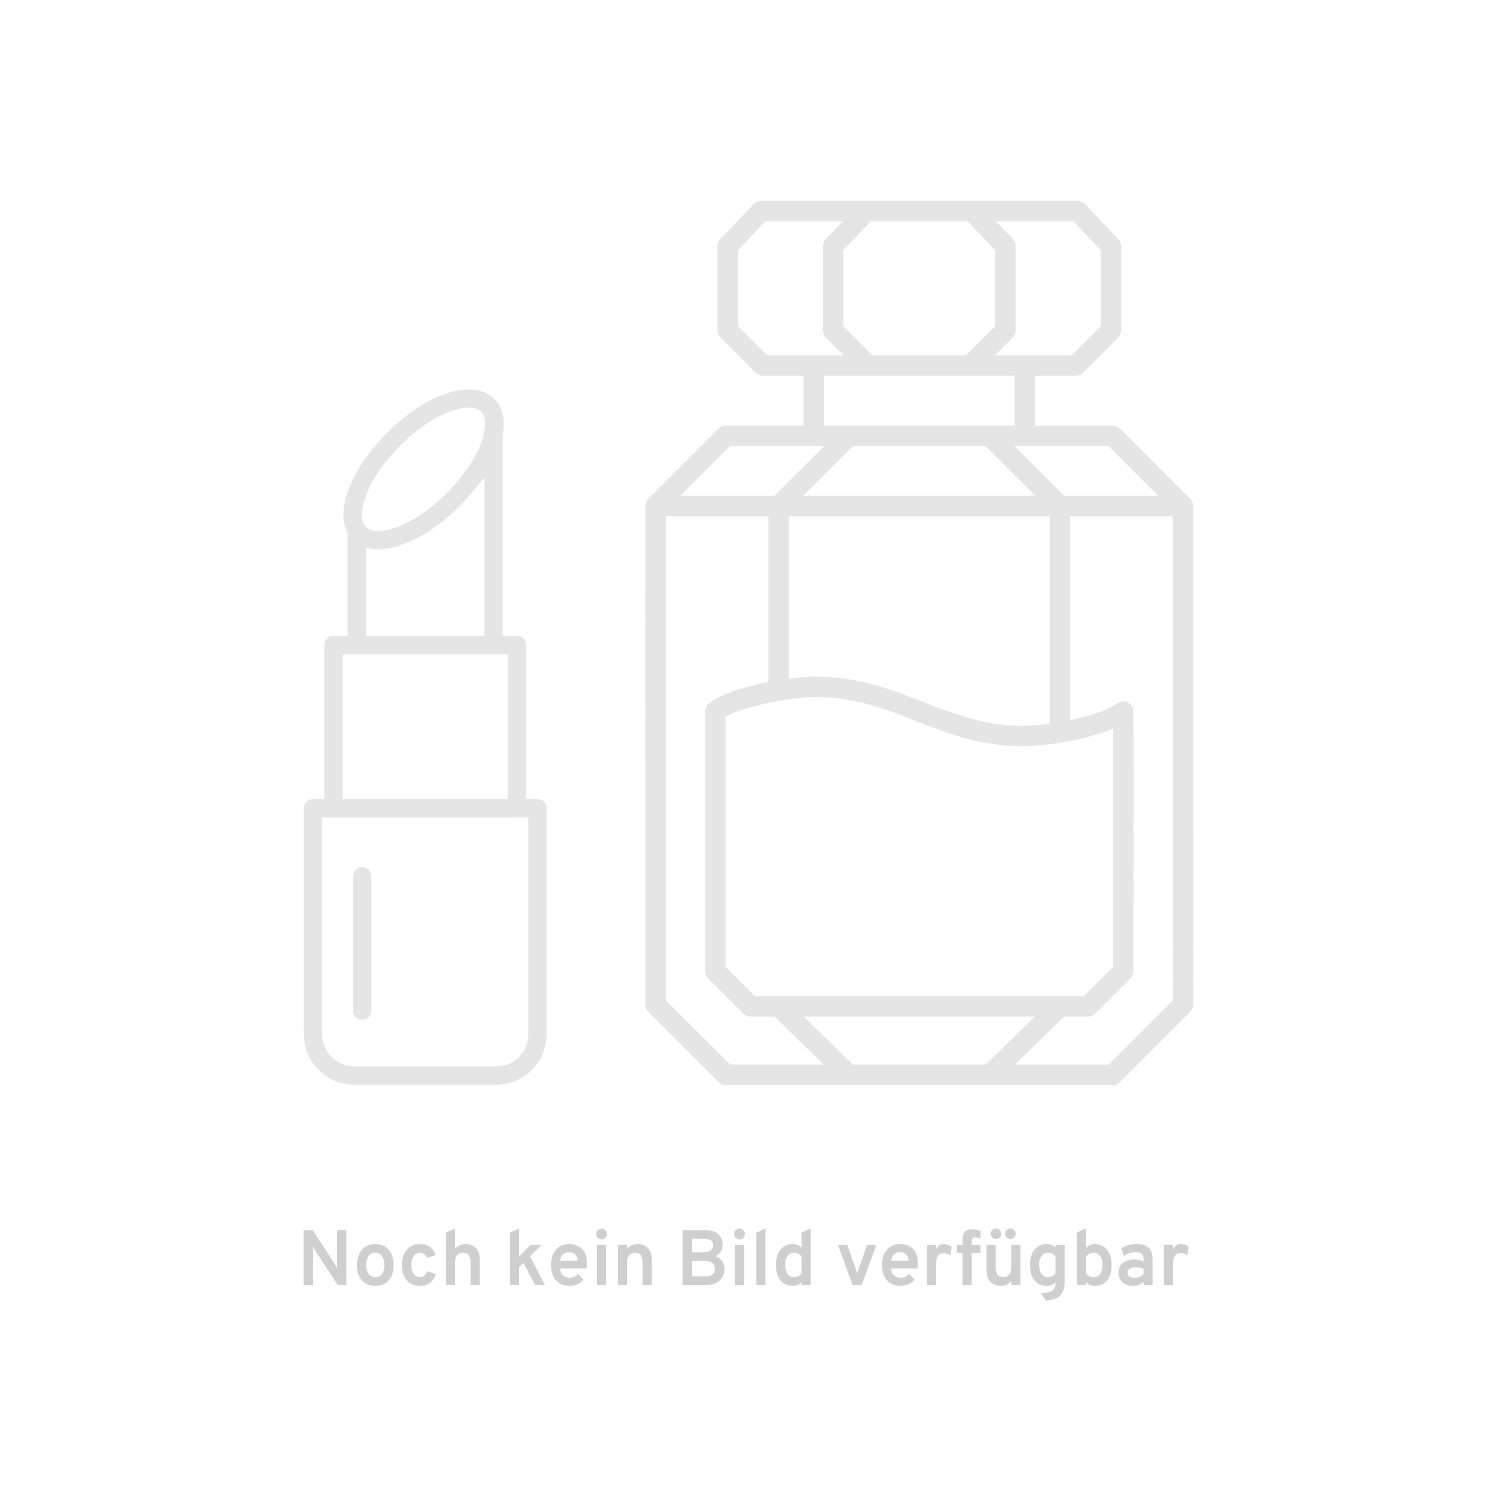 Outrageous Parfume Spray 10ml